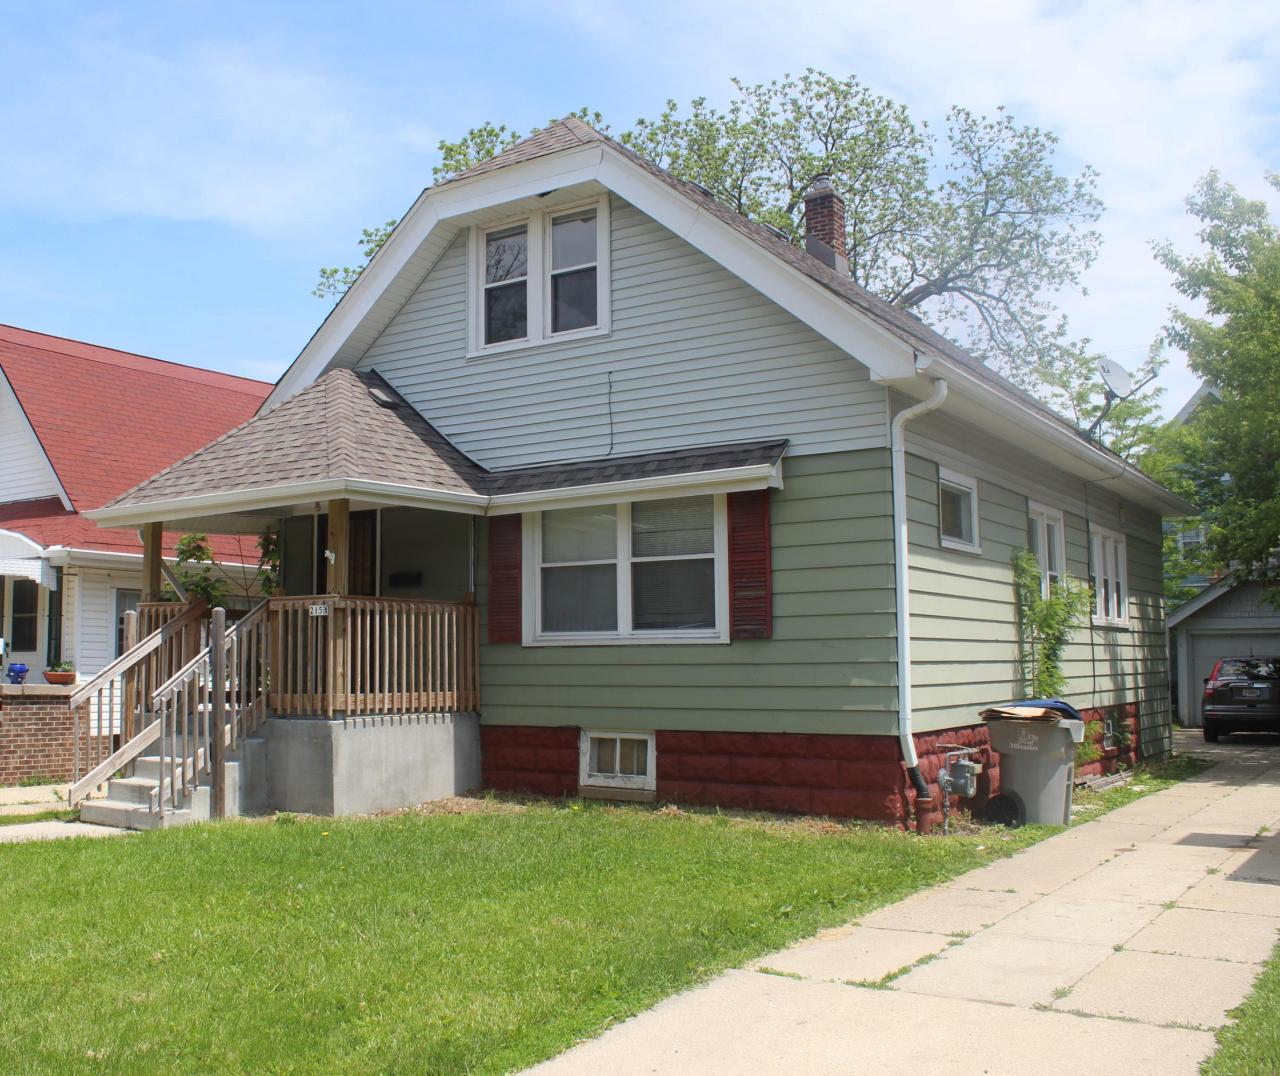 2158 N 55th St STREET, MILWAUKEE, WI 53208